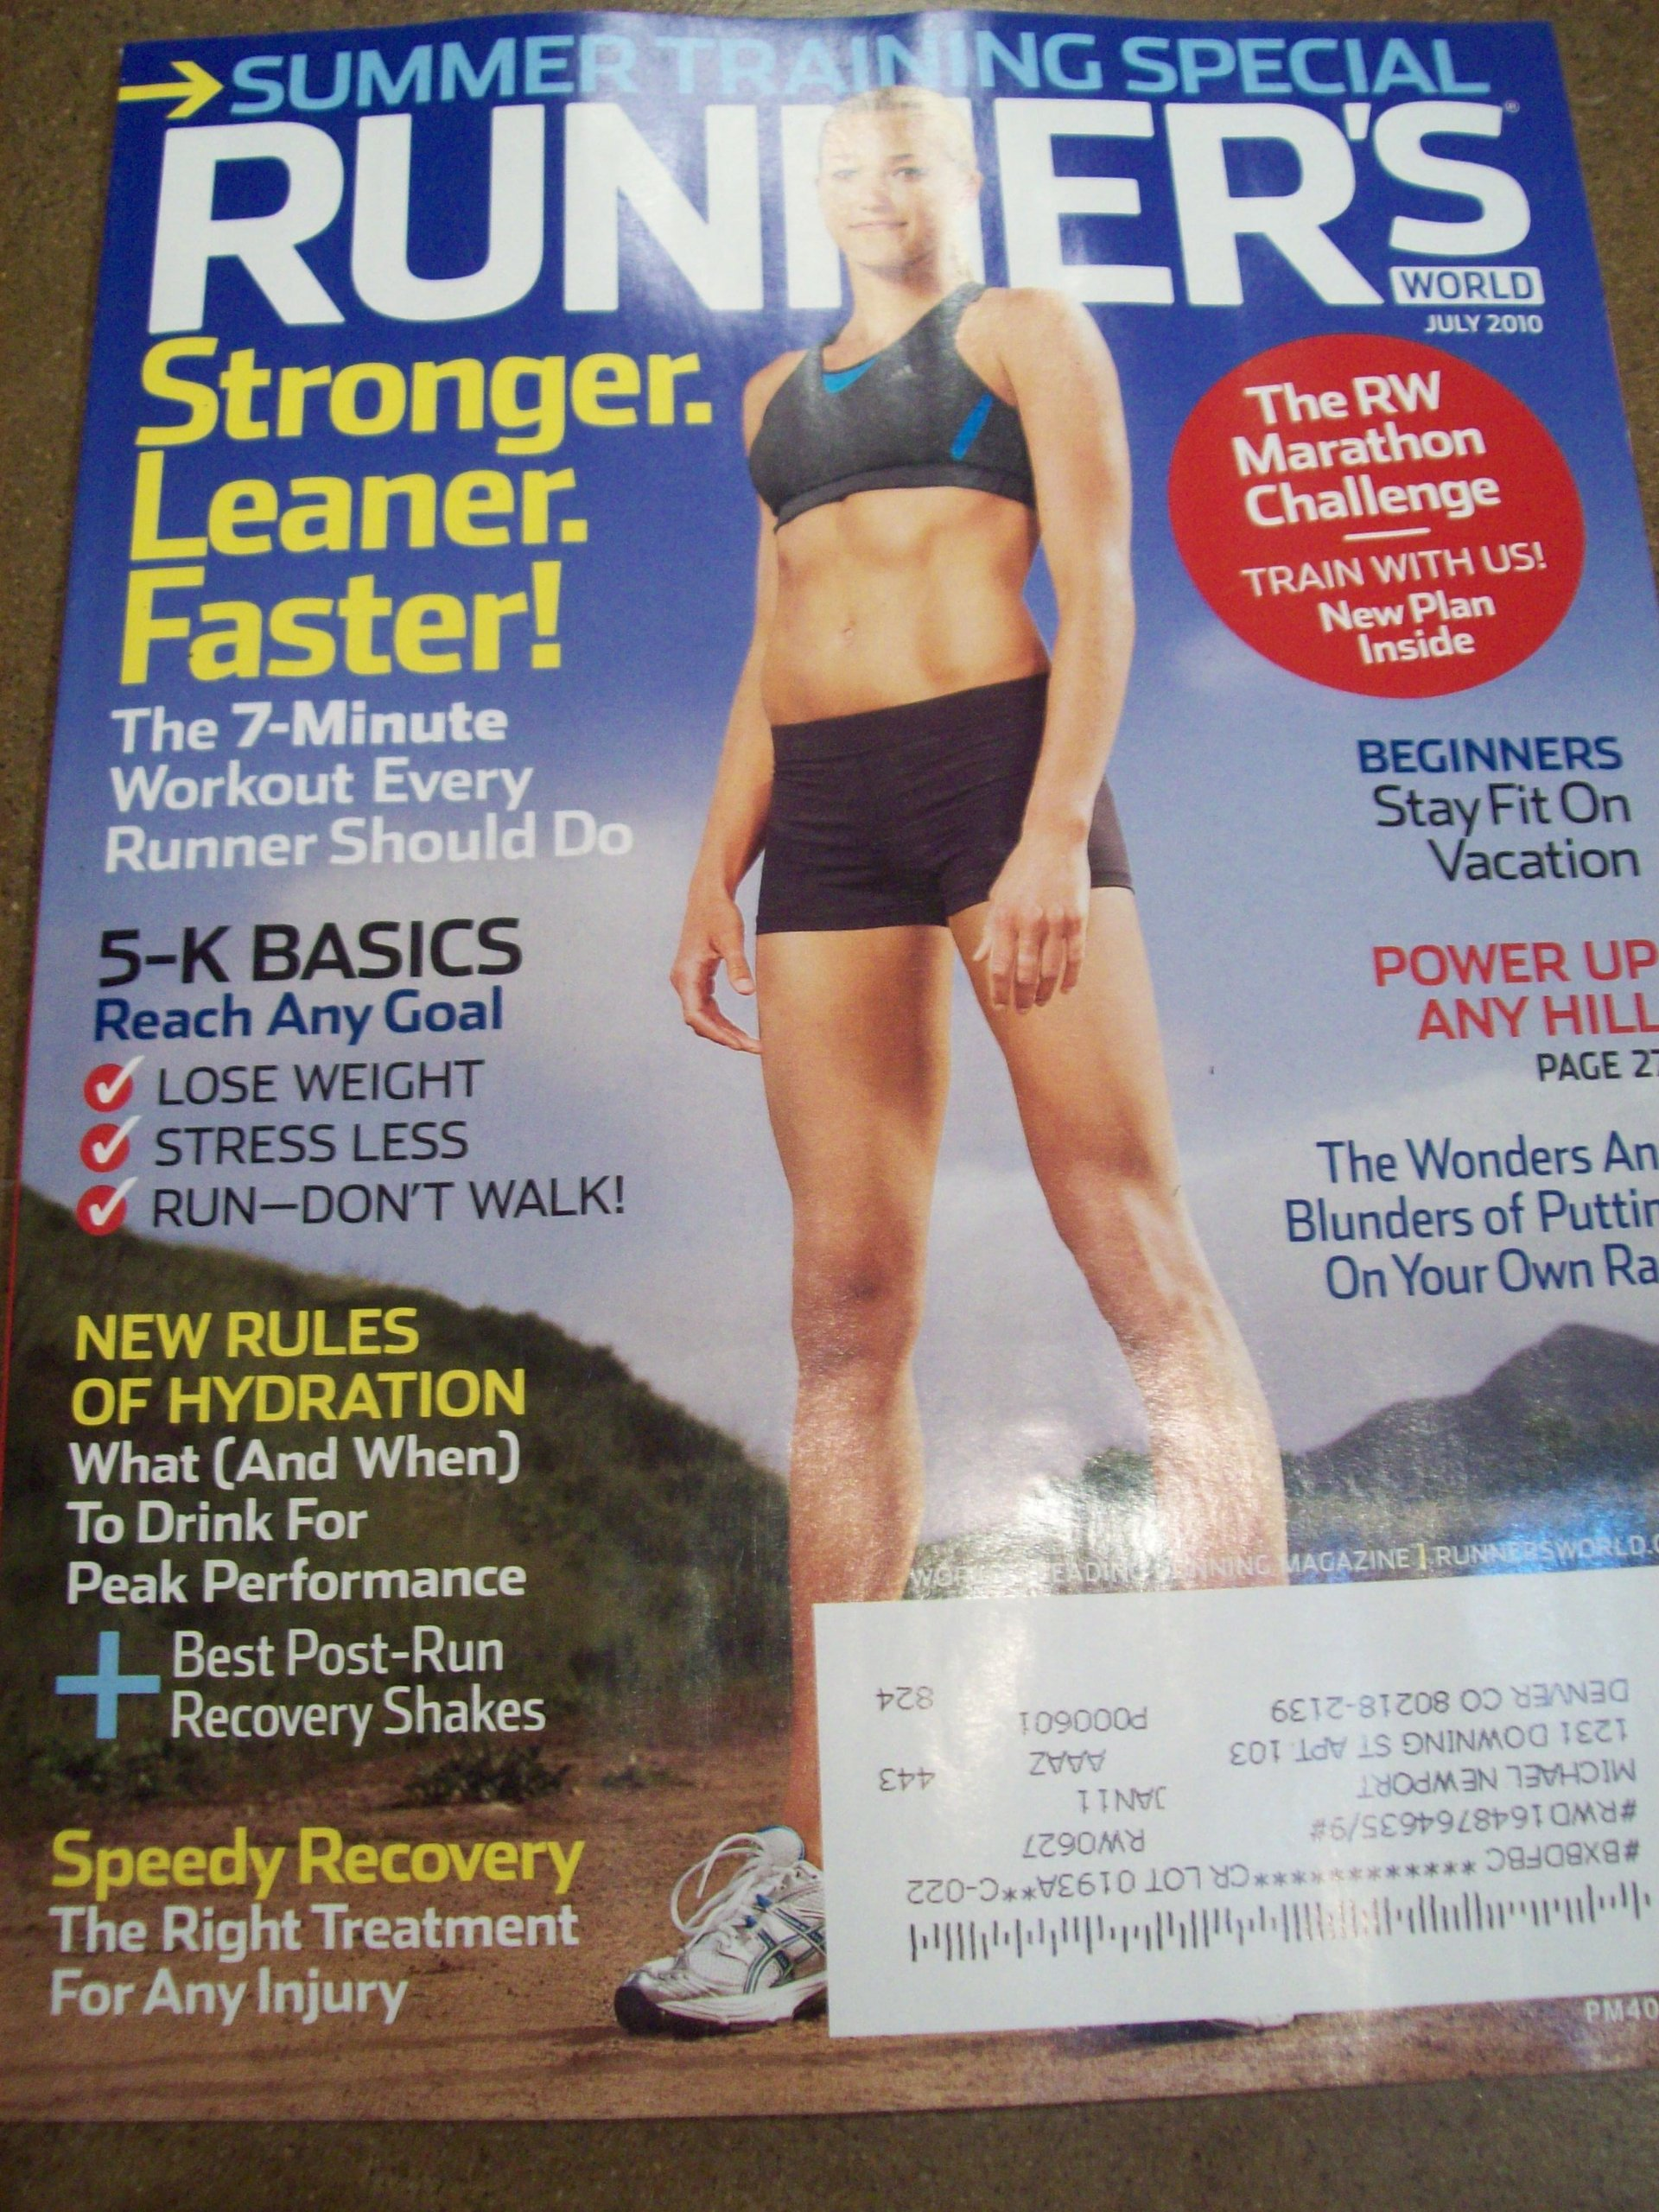 660ae8fcf4 Runner s World July 2010 Summer Training Special The 7-Minute Workout Every  Runner Should Do The RW Marathon Challenge 5-K Basics New Rules of  Hydration ...